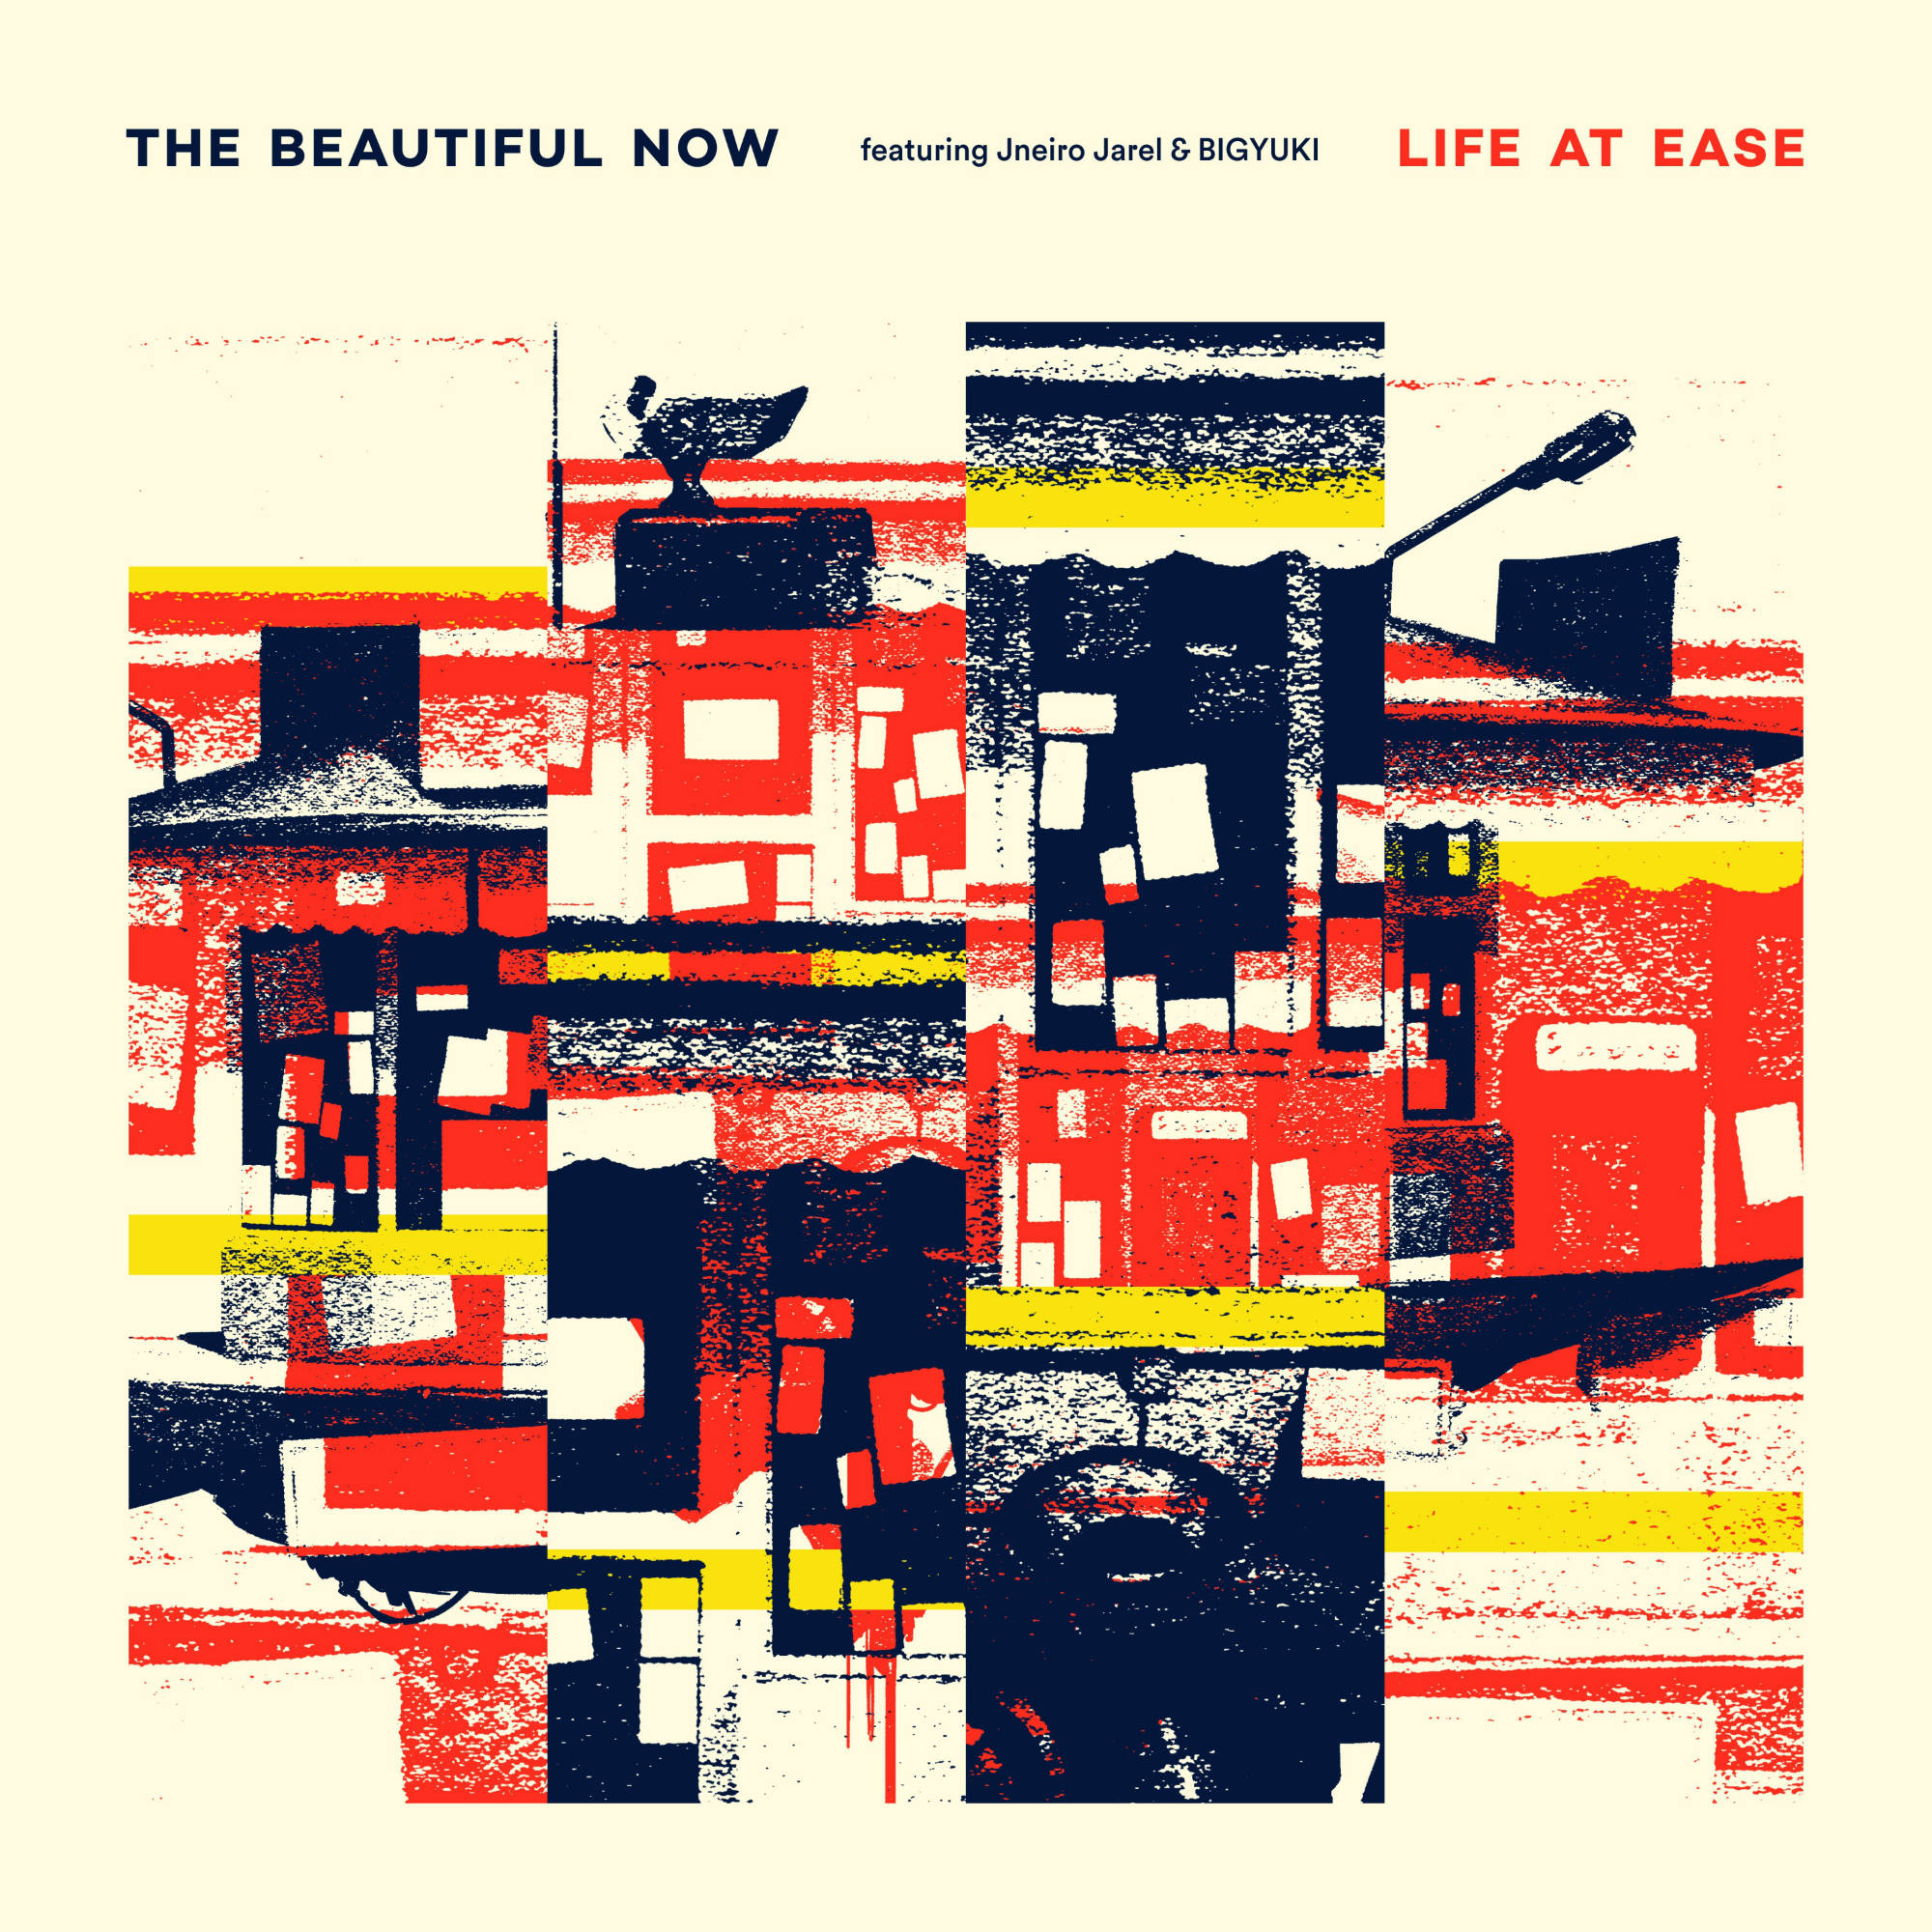 The Beautiful Now – Life At Ease (ft. Jneiro Jarel, BIGYUKI & Brandy Butler)